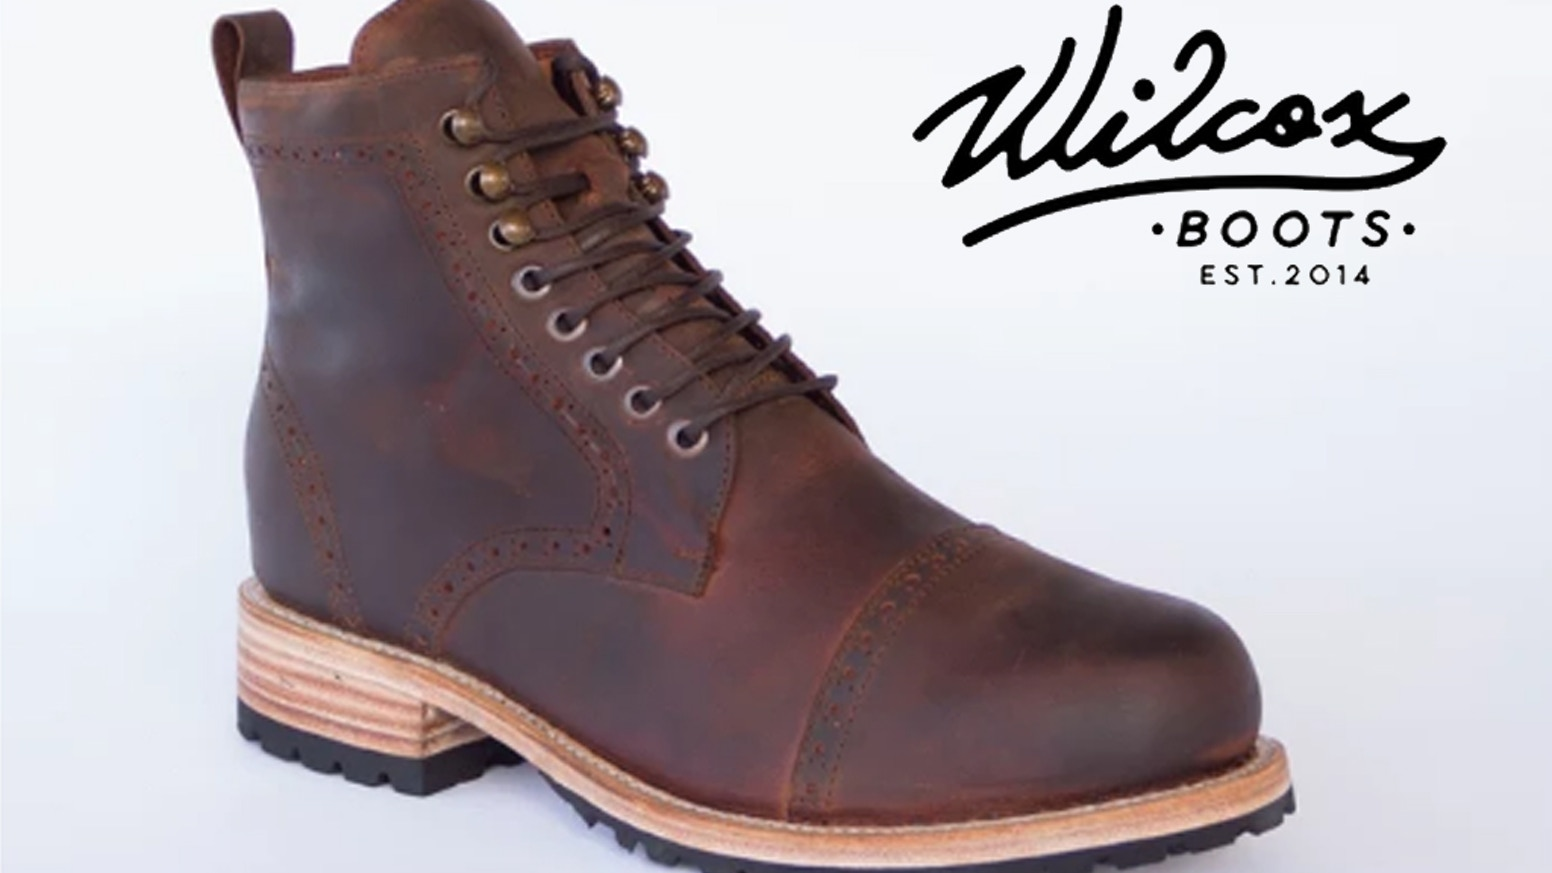 Handmade leather boots with premium comfort. Ready for any adventure.